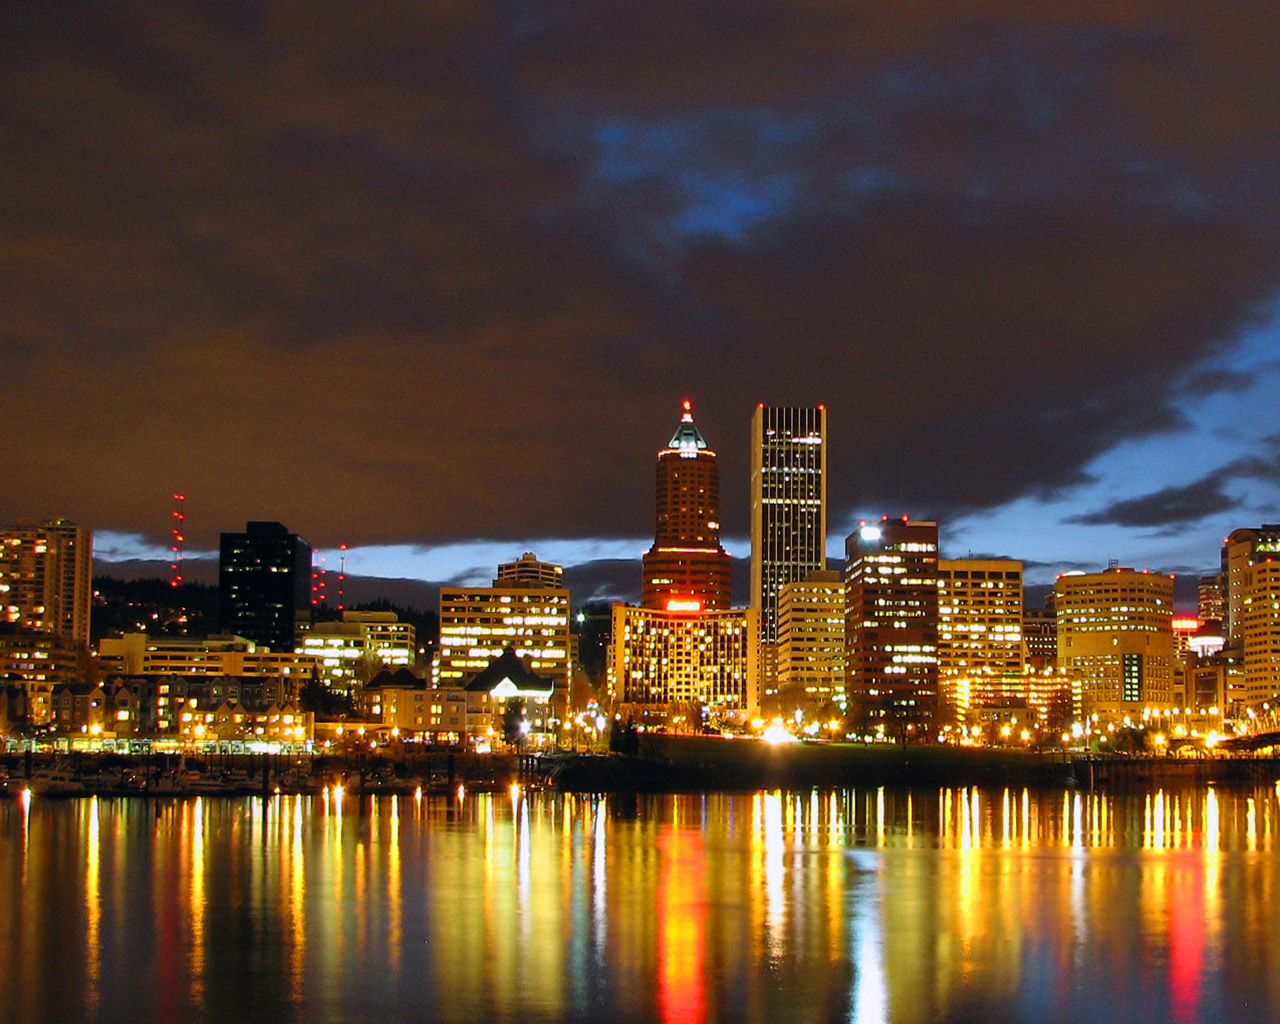 Portland Images Cityscape At Night HD Wallpaper And Background Photos